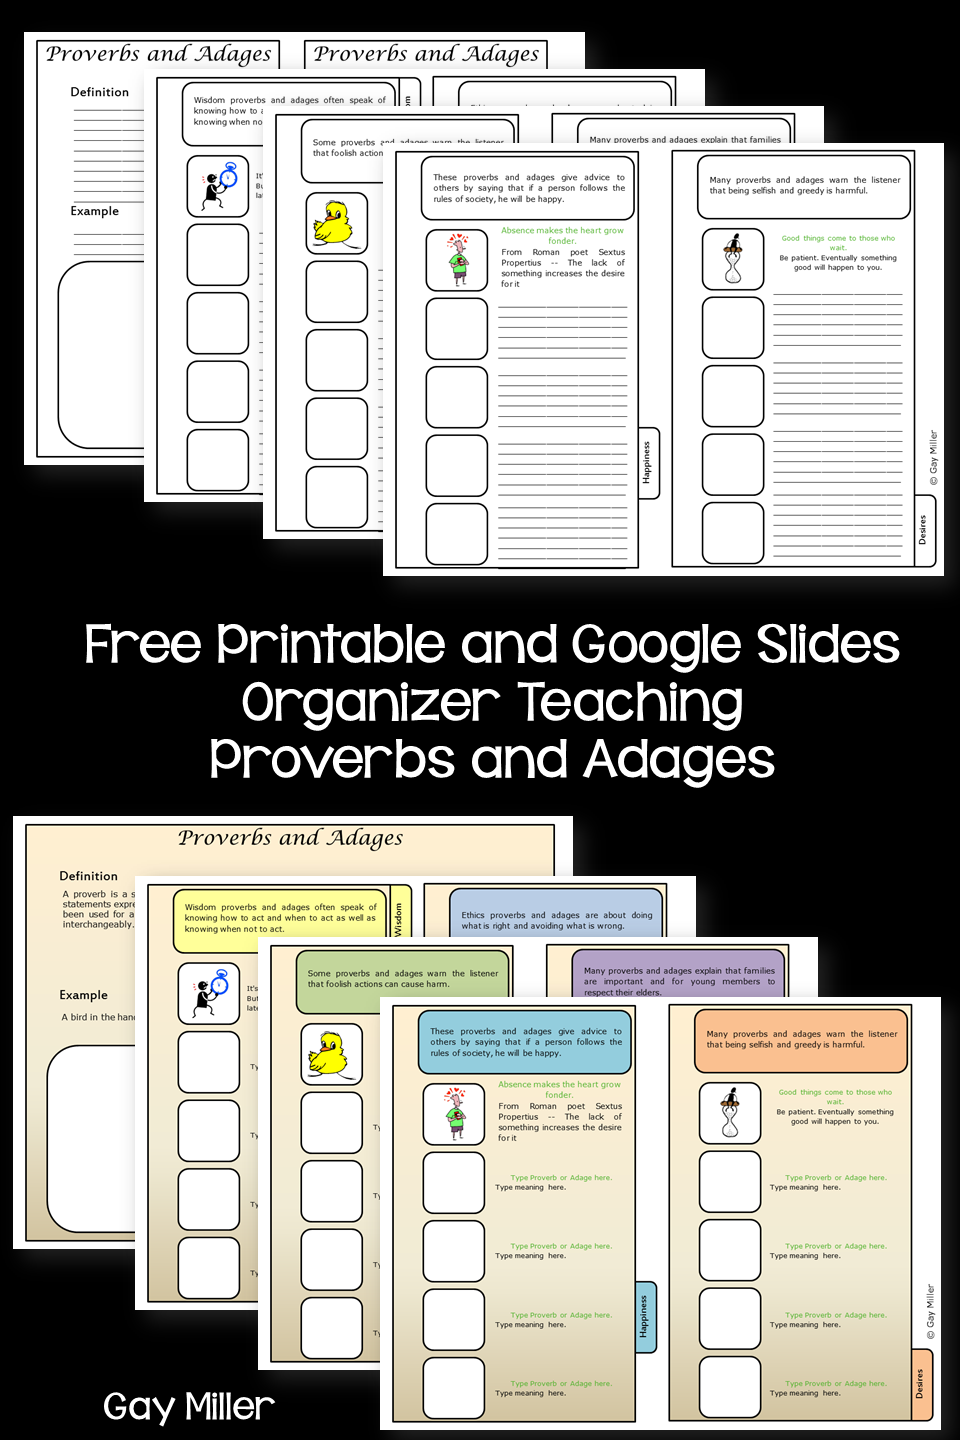 Free Proverb and Adages Organizer - Printable and Google Slides Versions